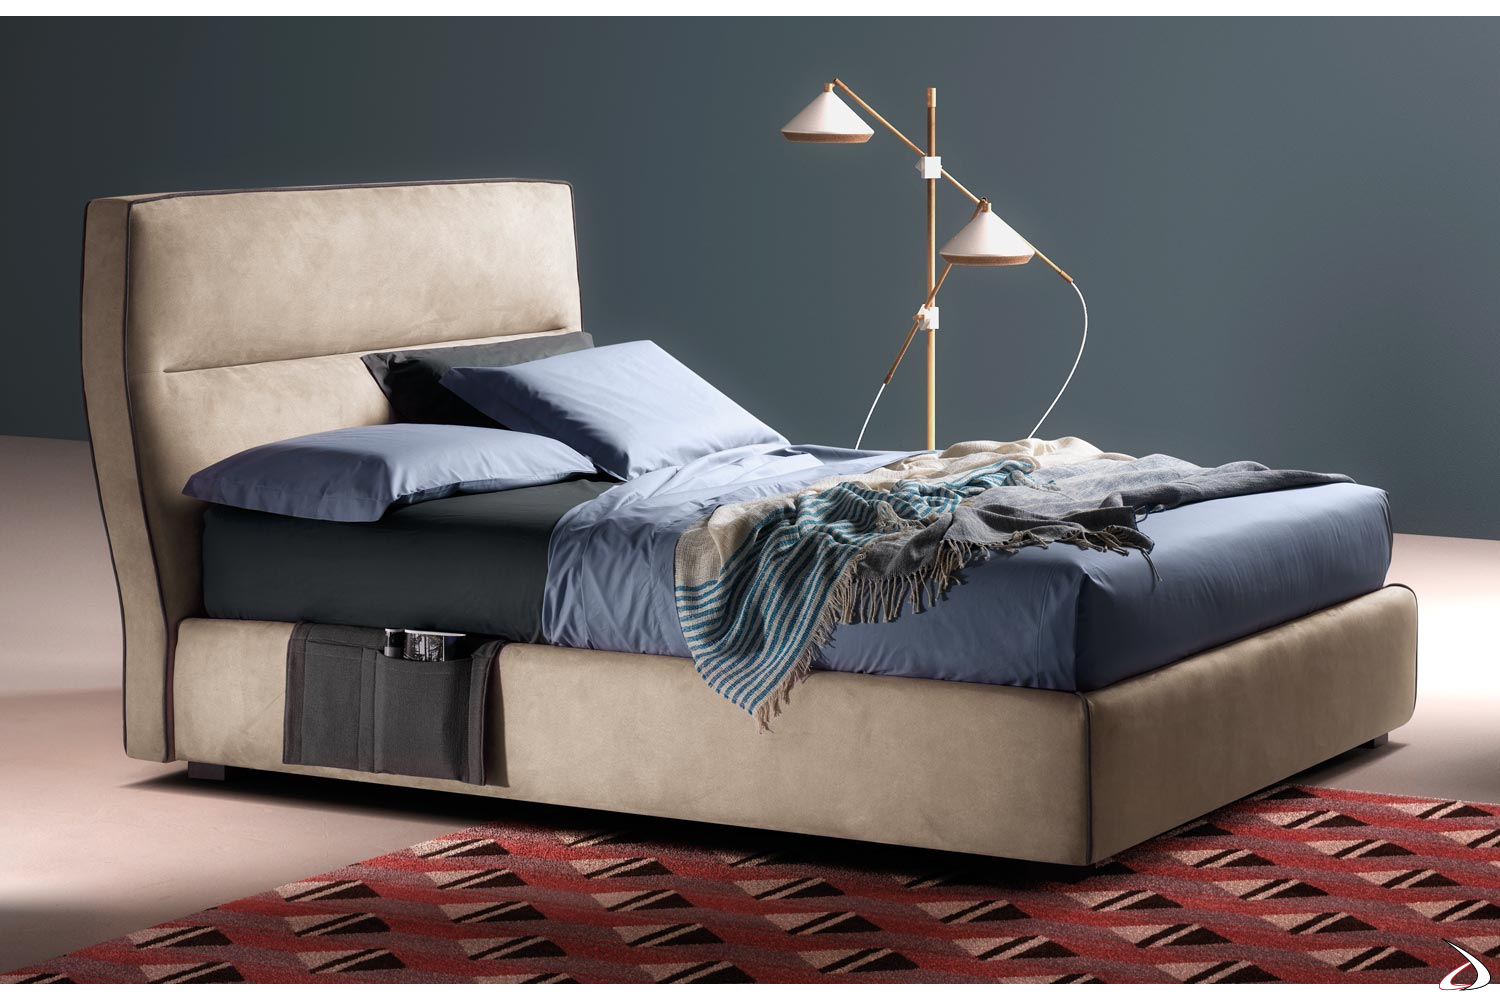 Letto 1 Piazza.Fuerte Upholstered 1 And A Half Square Bed Toparredi Arredo